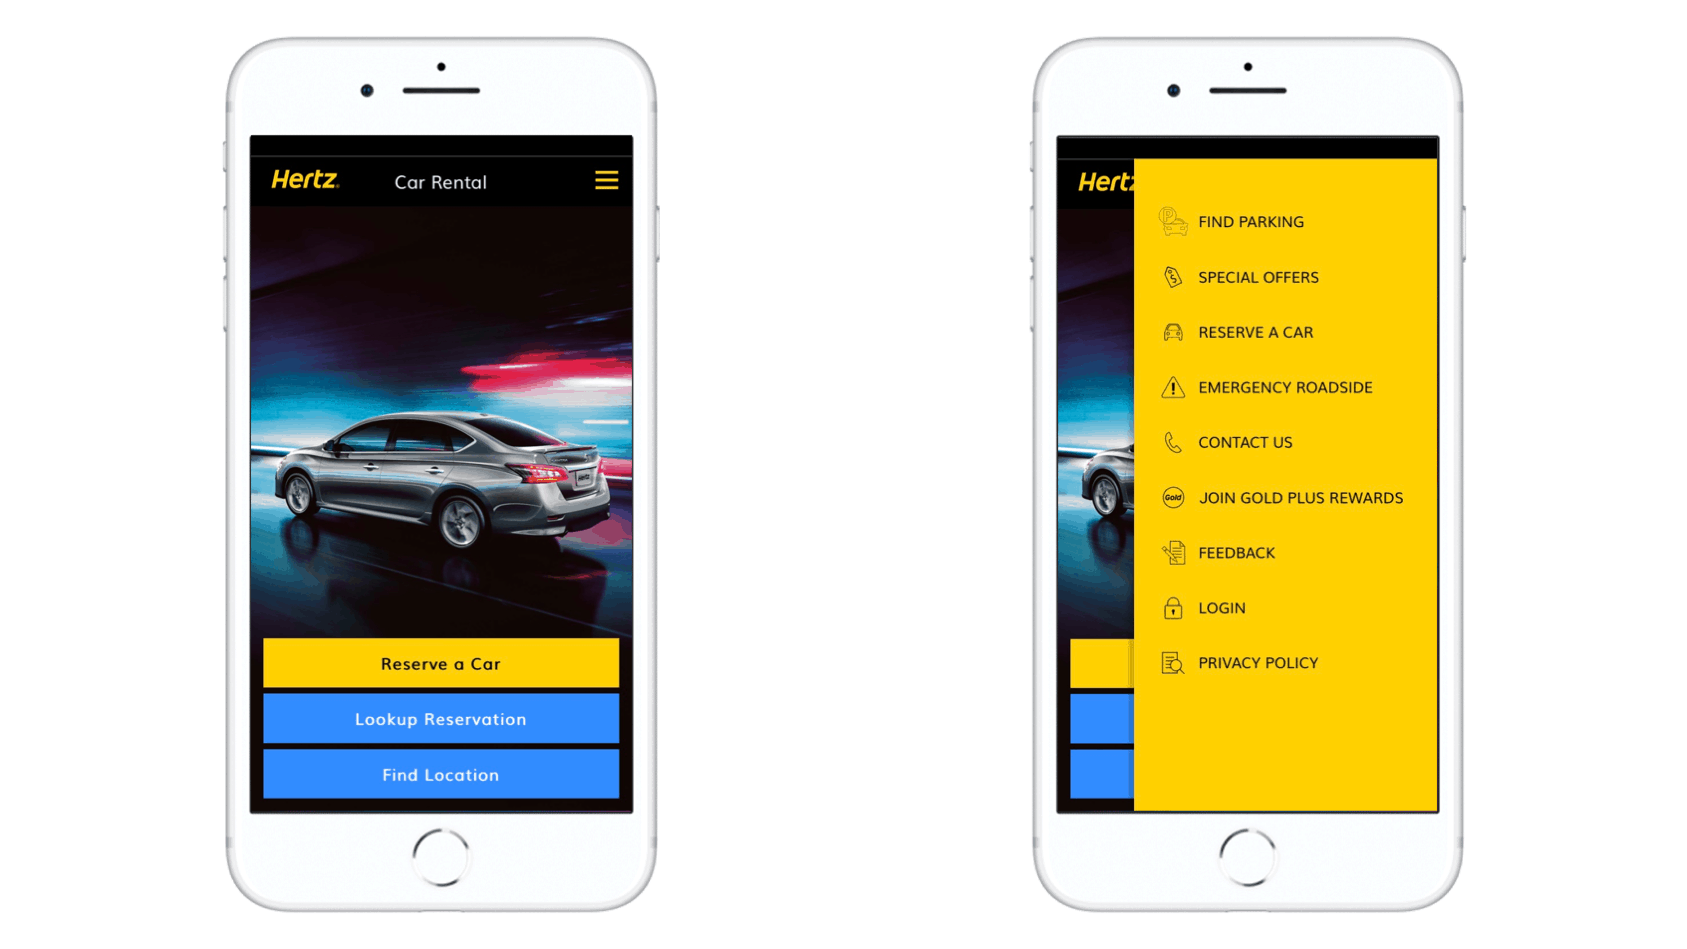 Hertz car rental mobile application home page screenshot